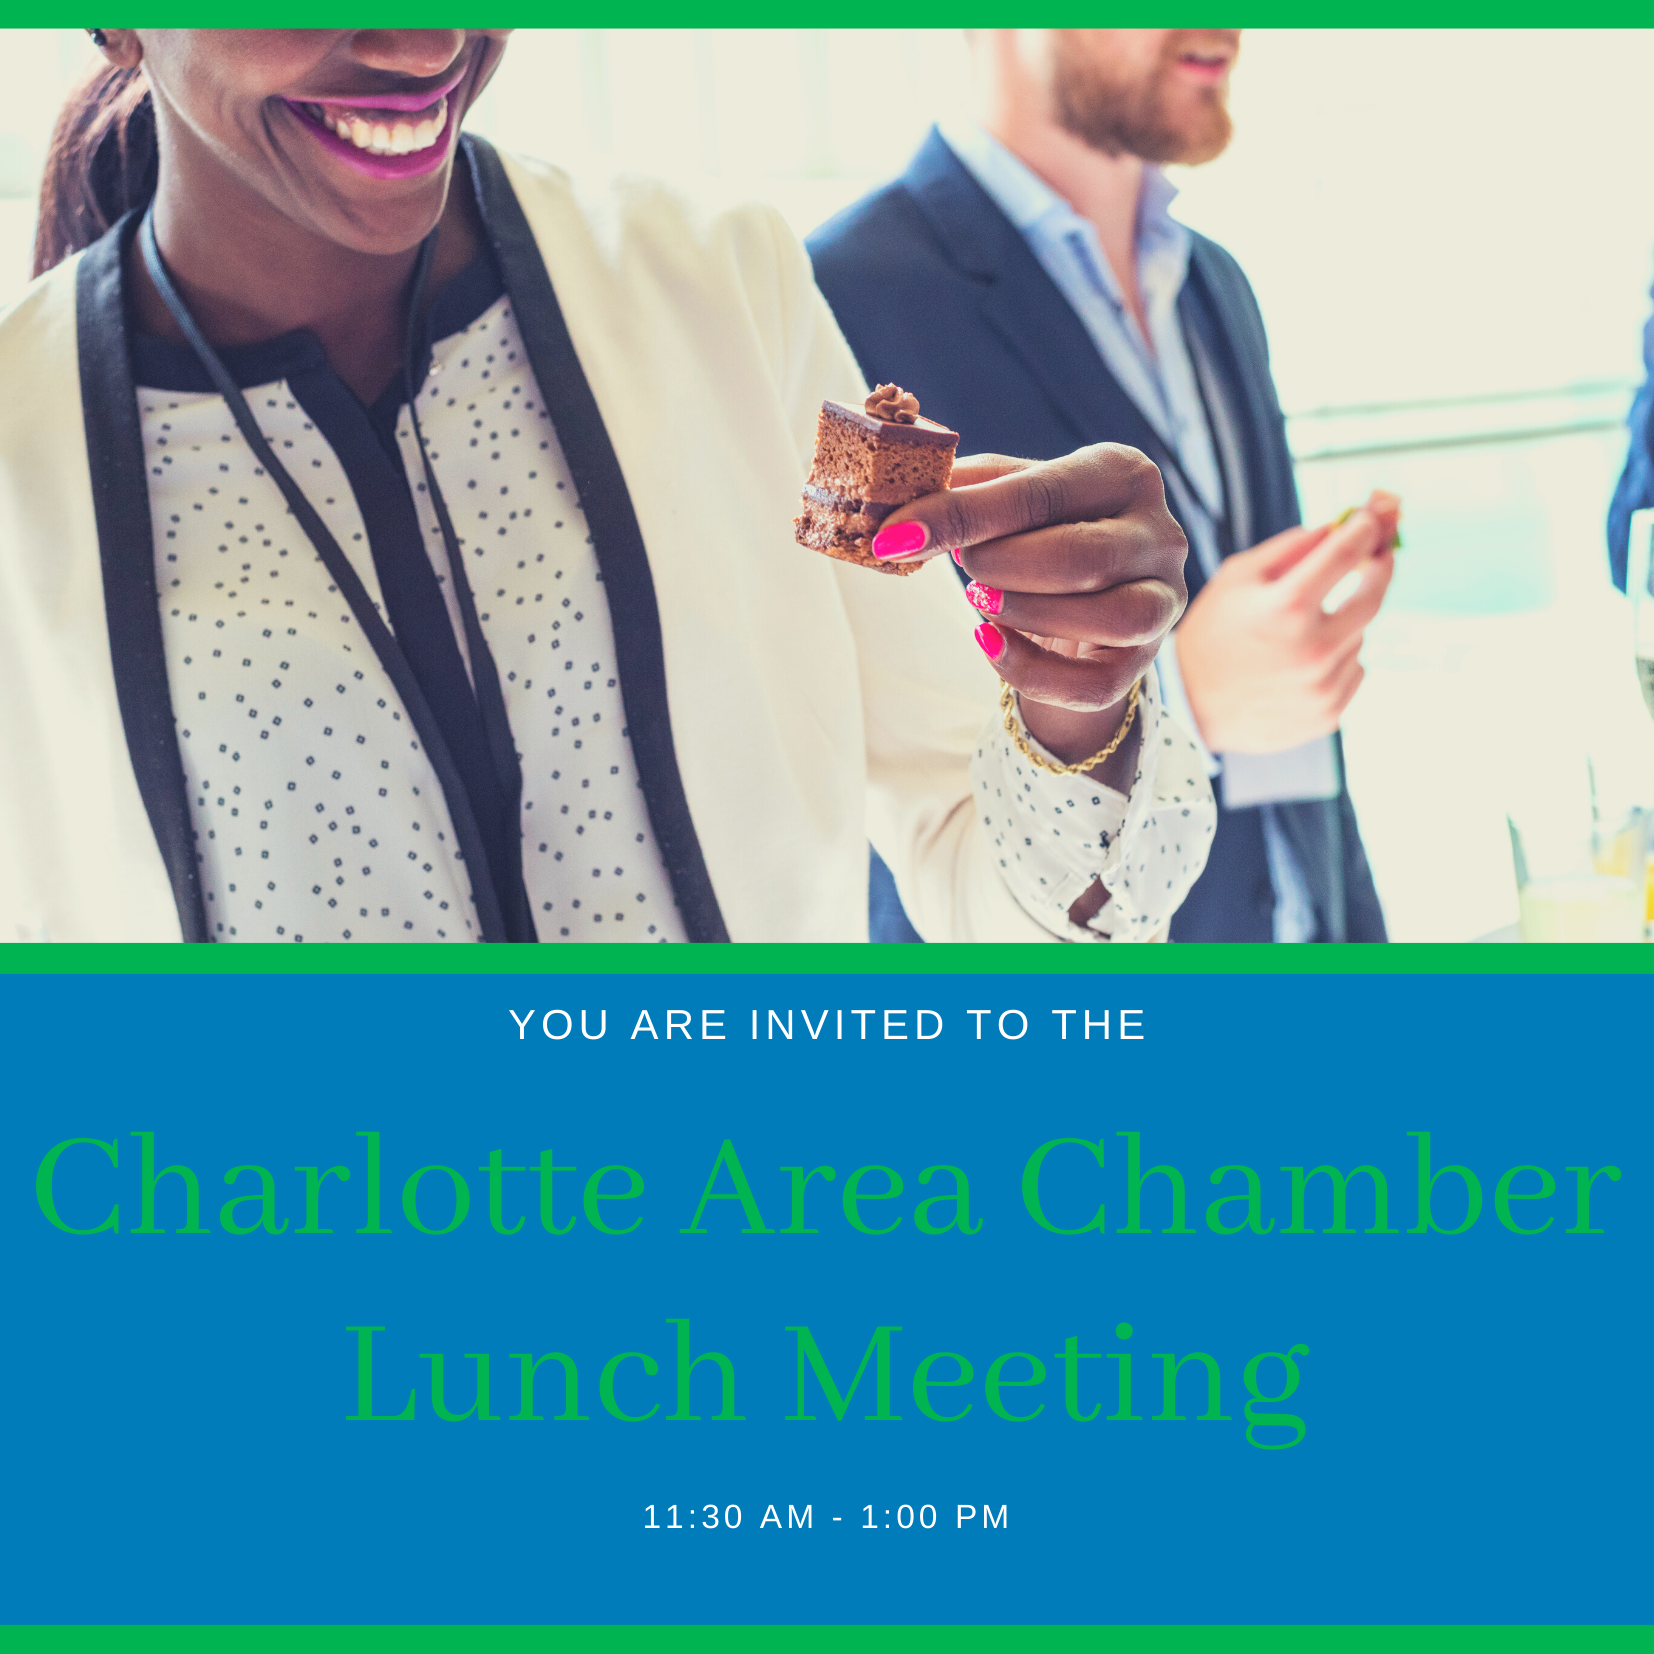 Lunch meeting invitation